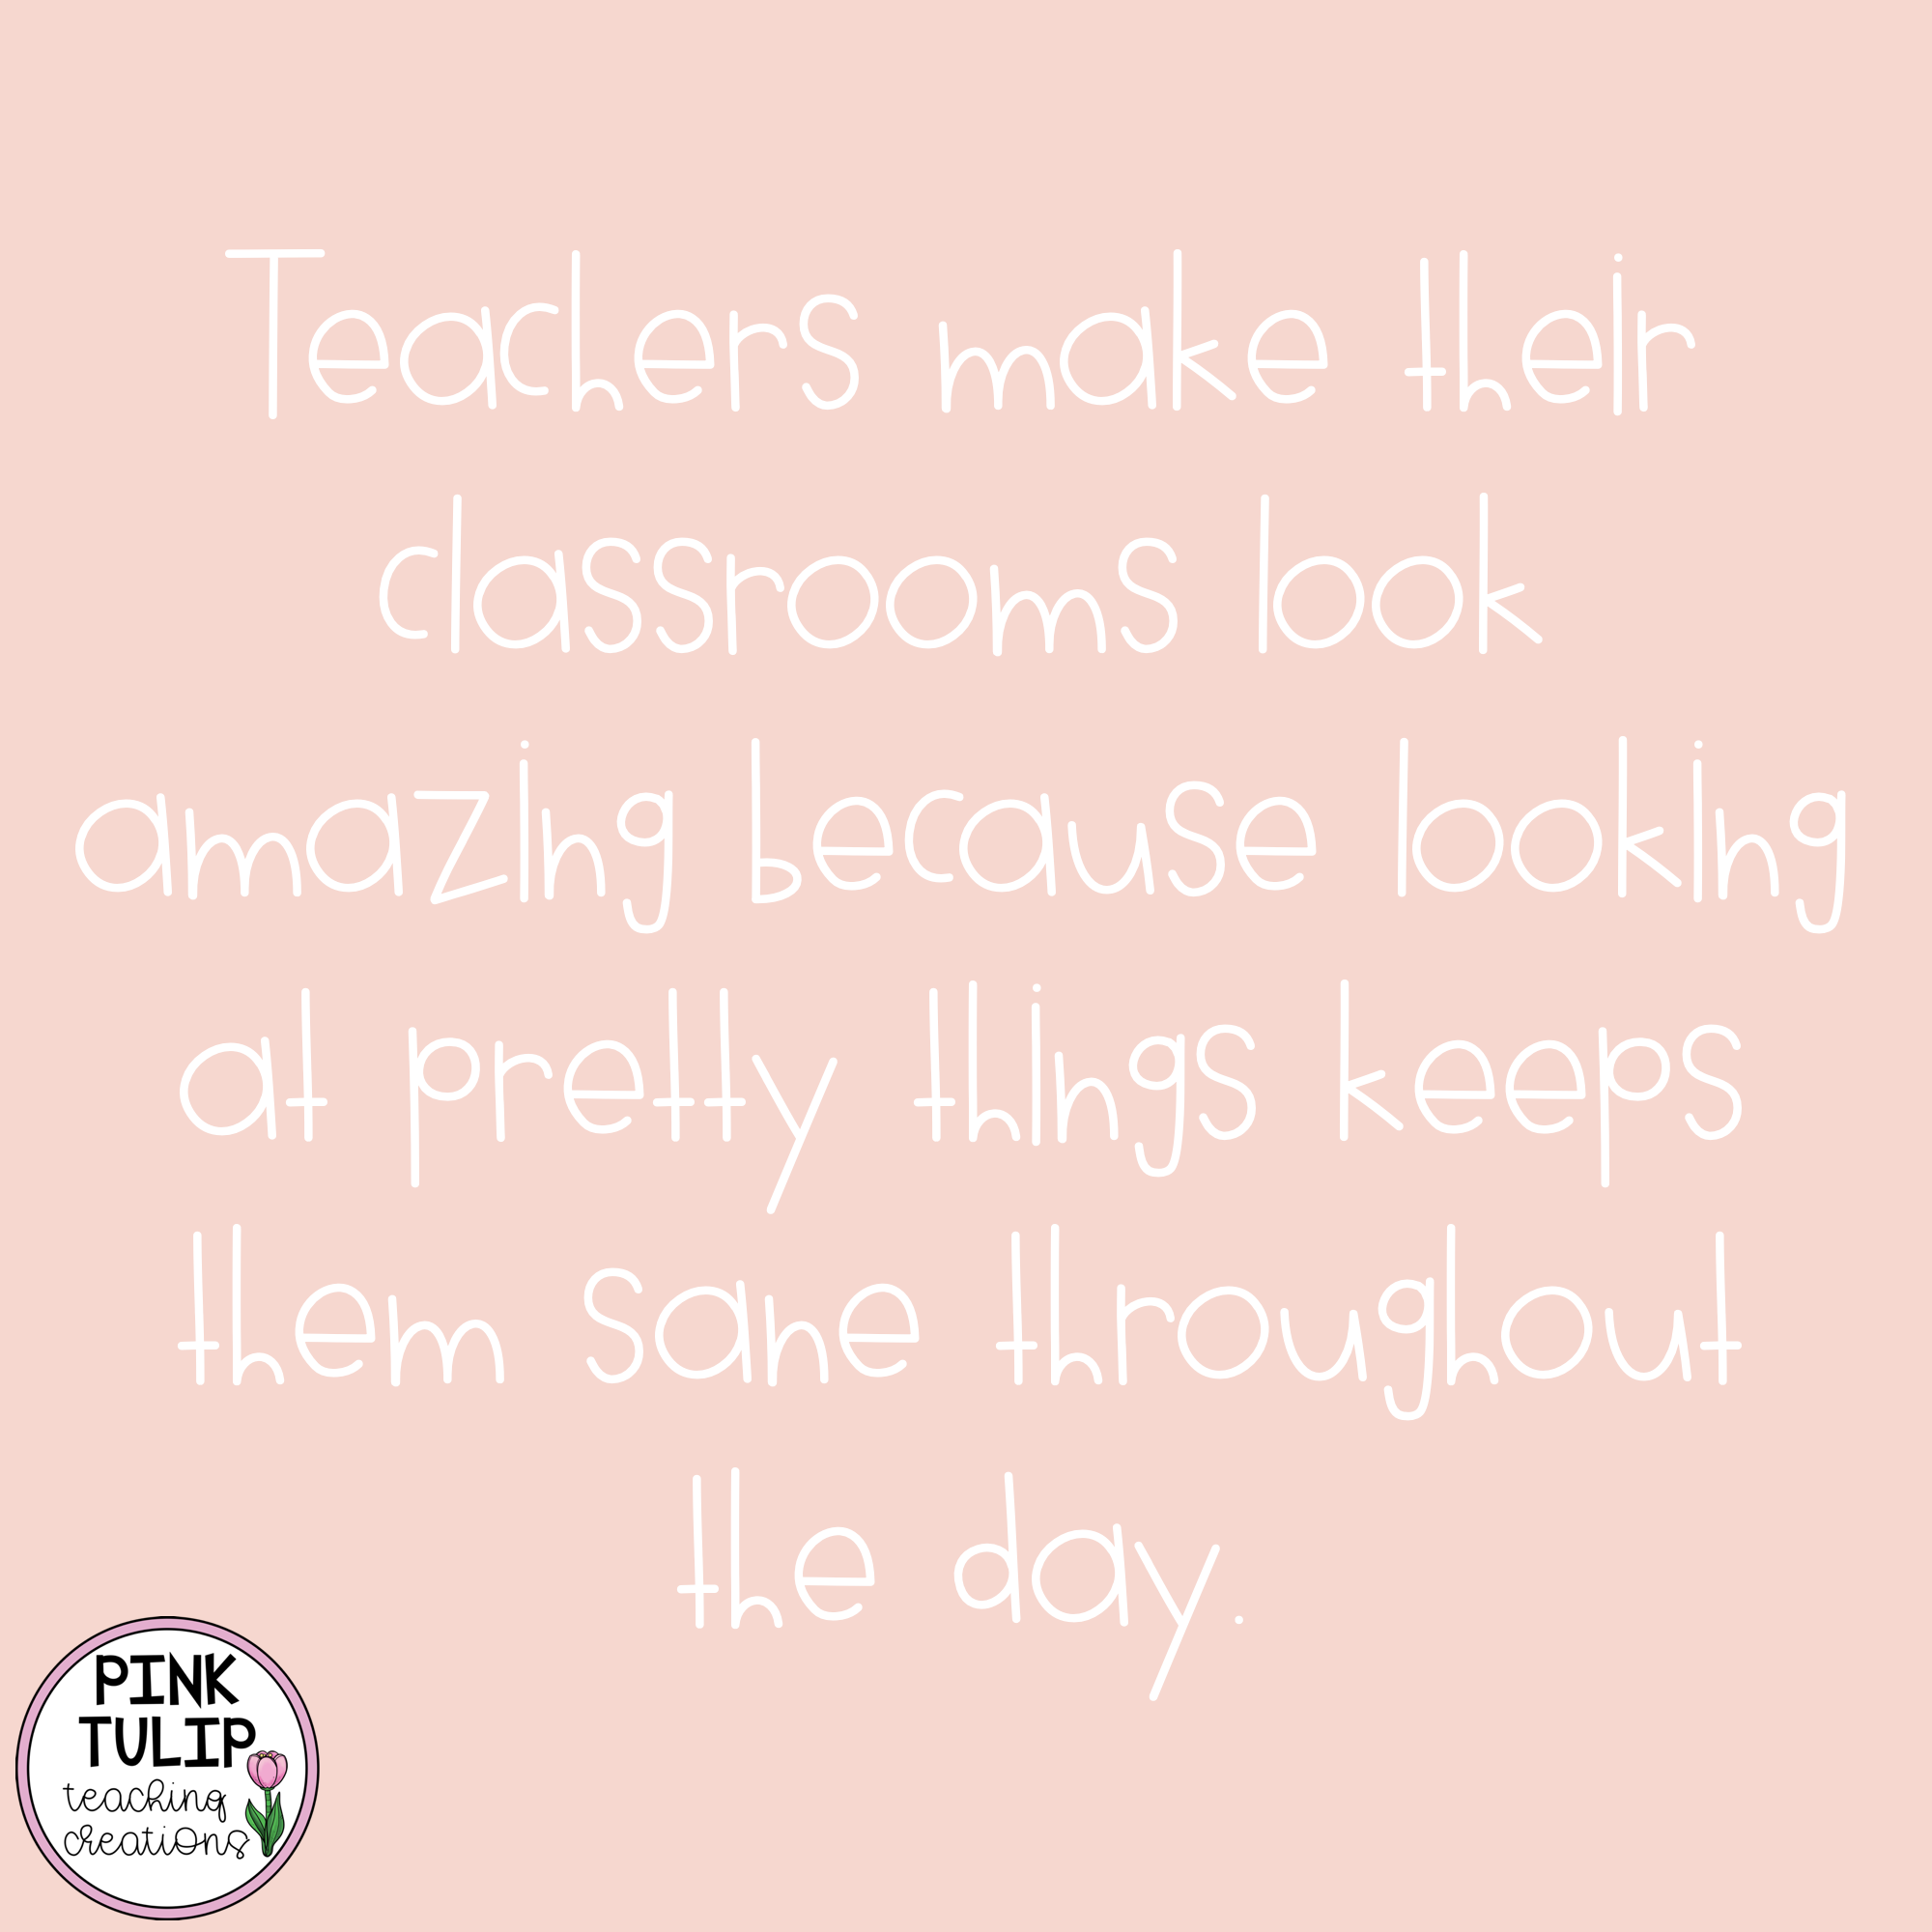 Teachers Make Their Classrooms Look Amazing Because